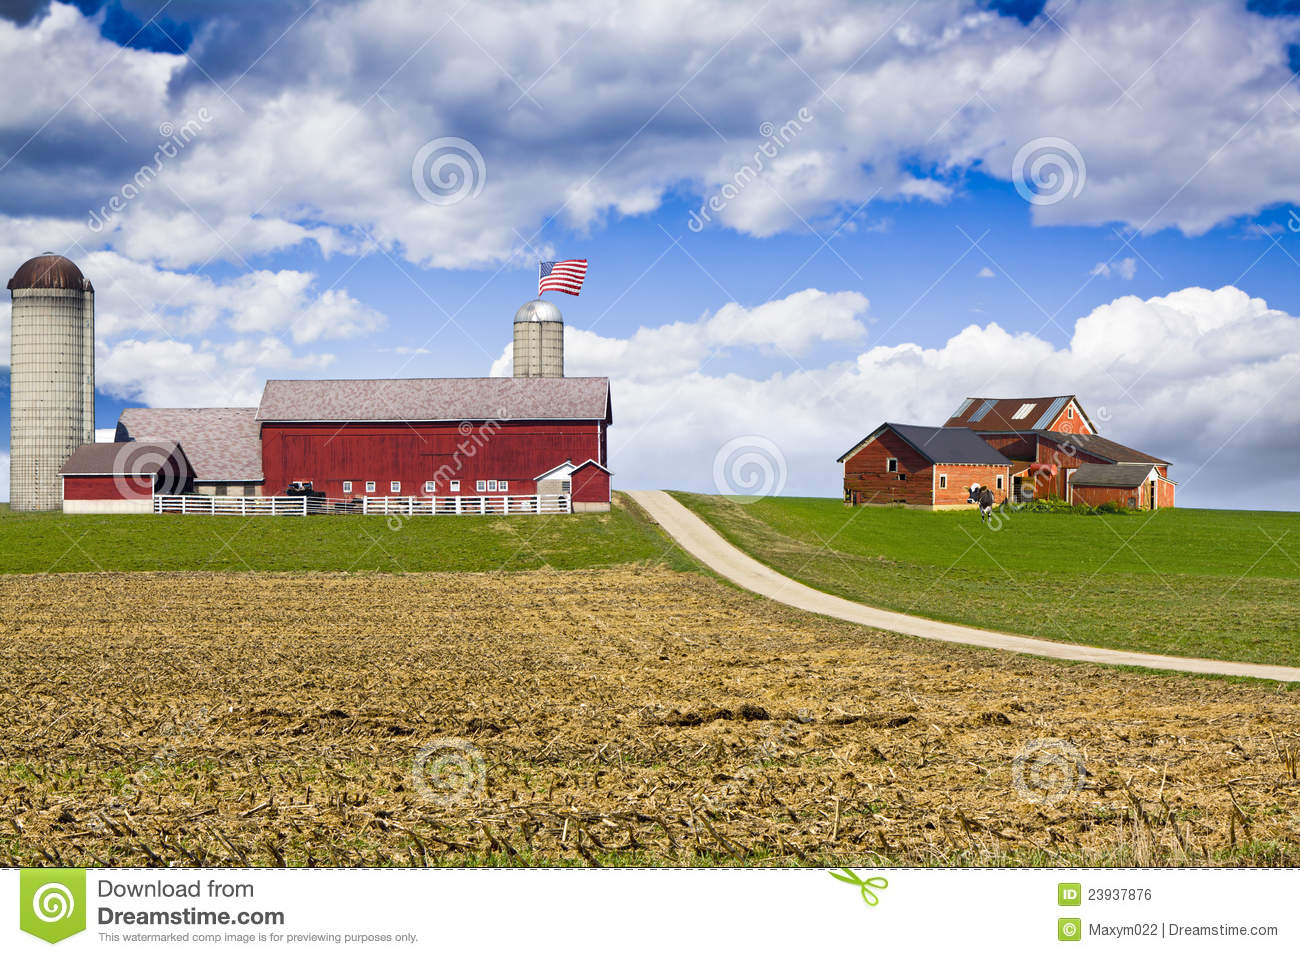 Royalty Free Stock Image American Country Image23937876 on old time farmhouse plans